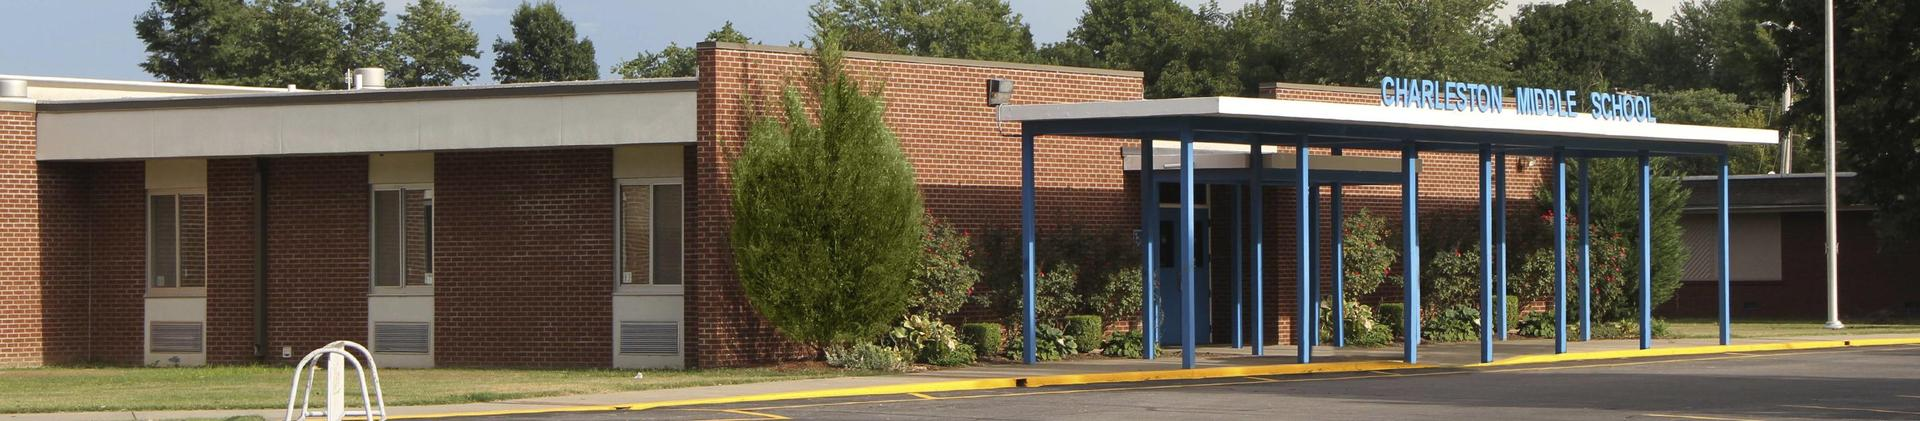 Charleston Middle School, front